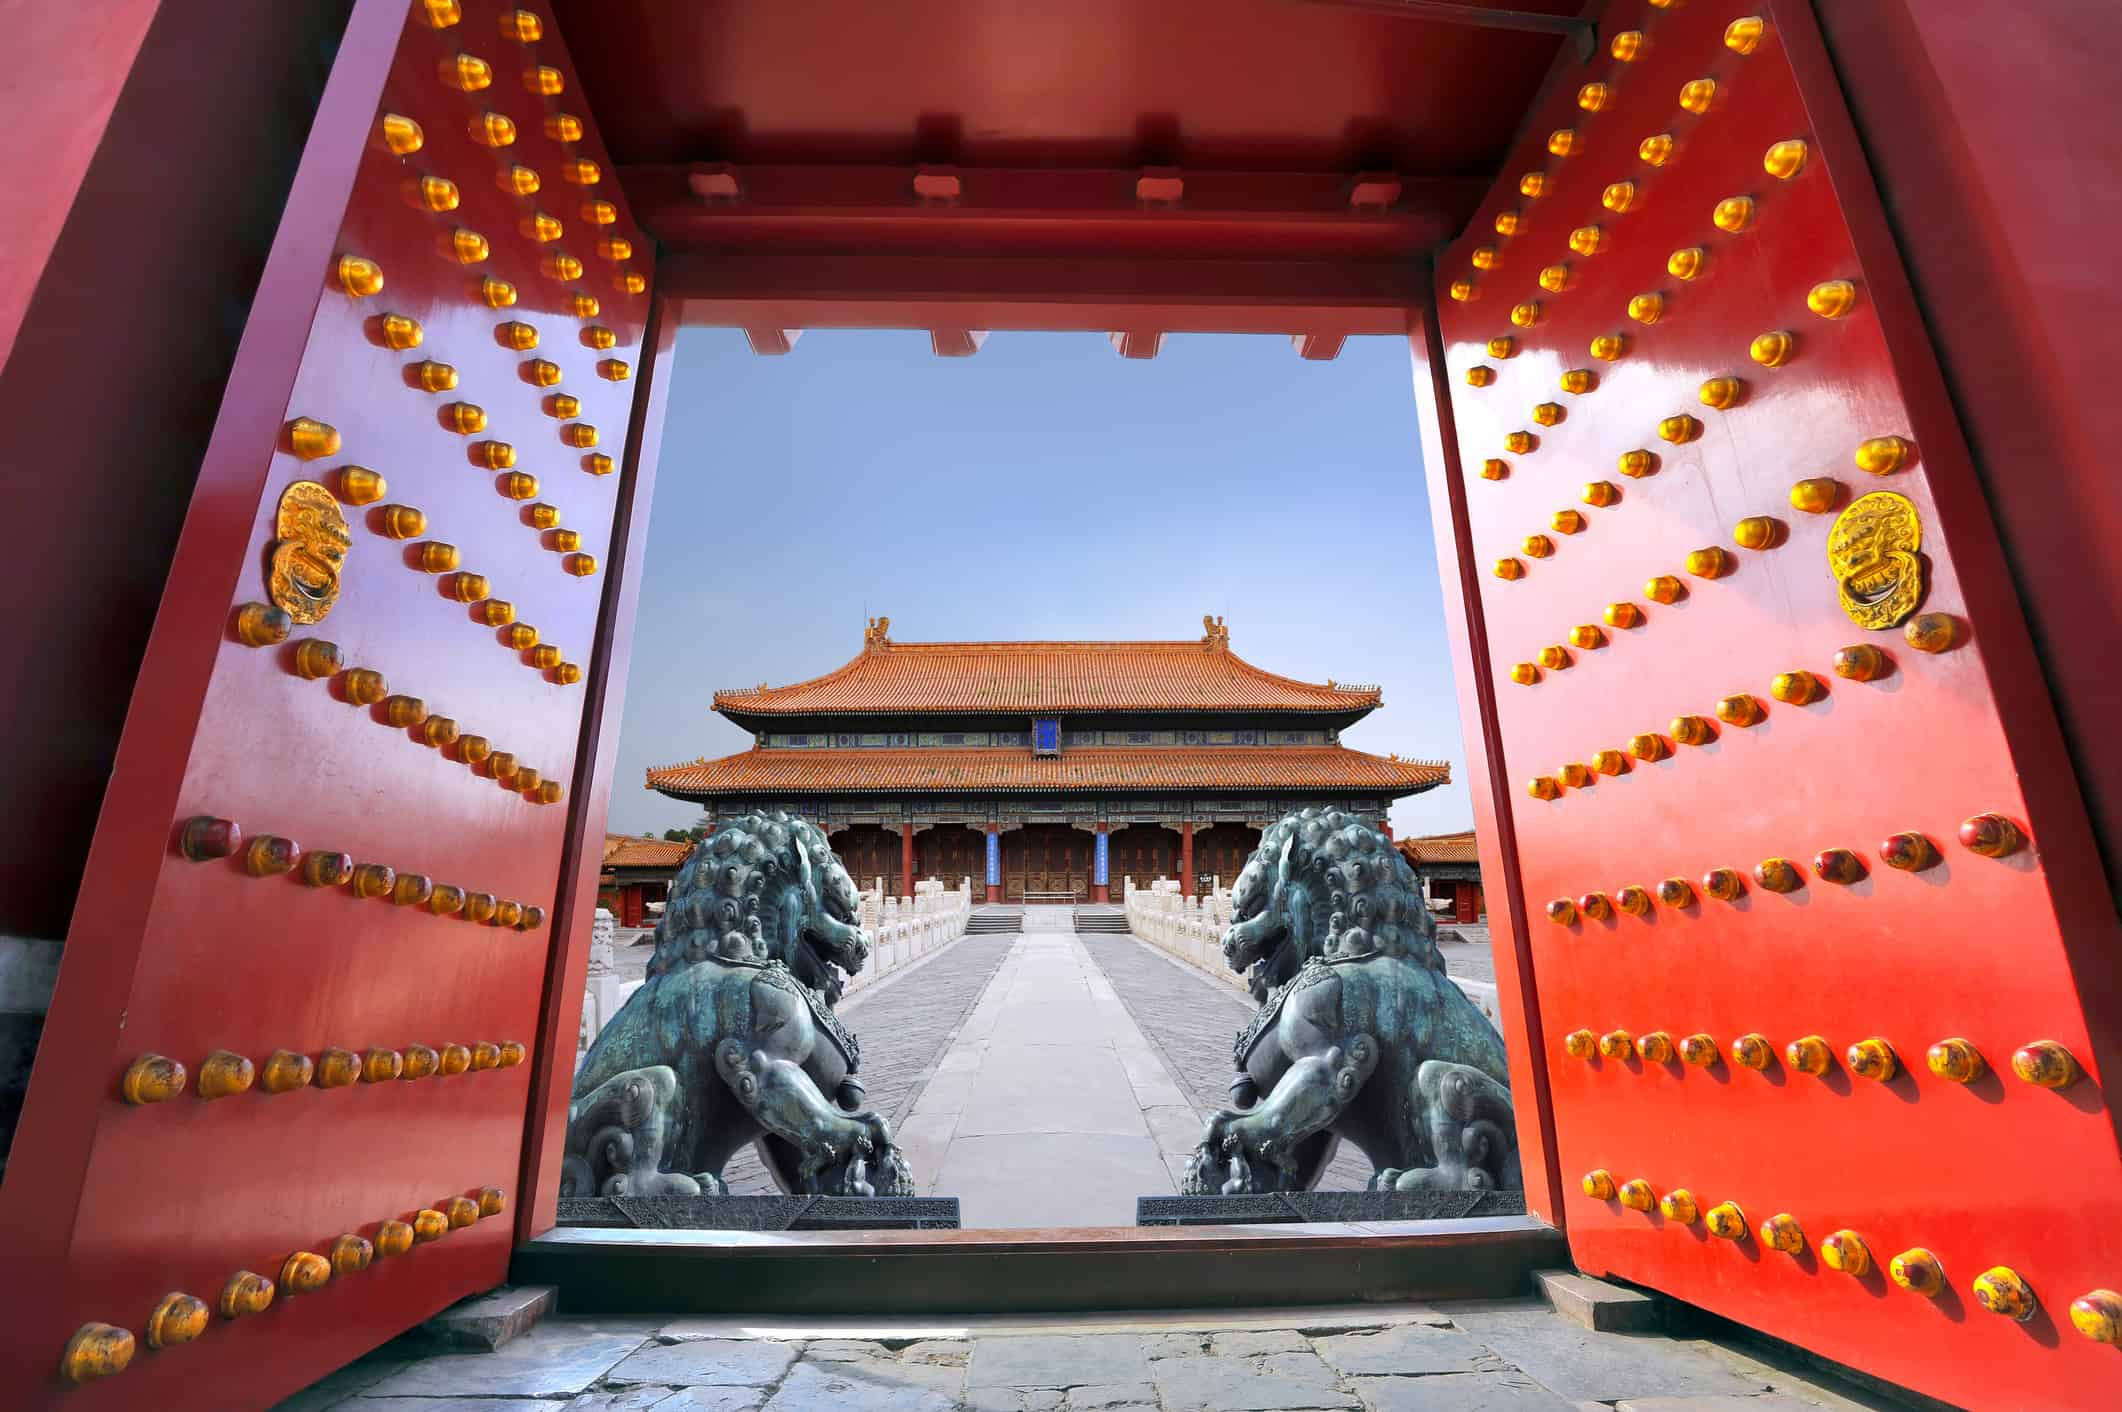 Red entrance gate opening to the forbidden city in Beijing - China